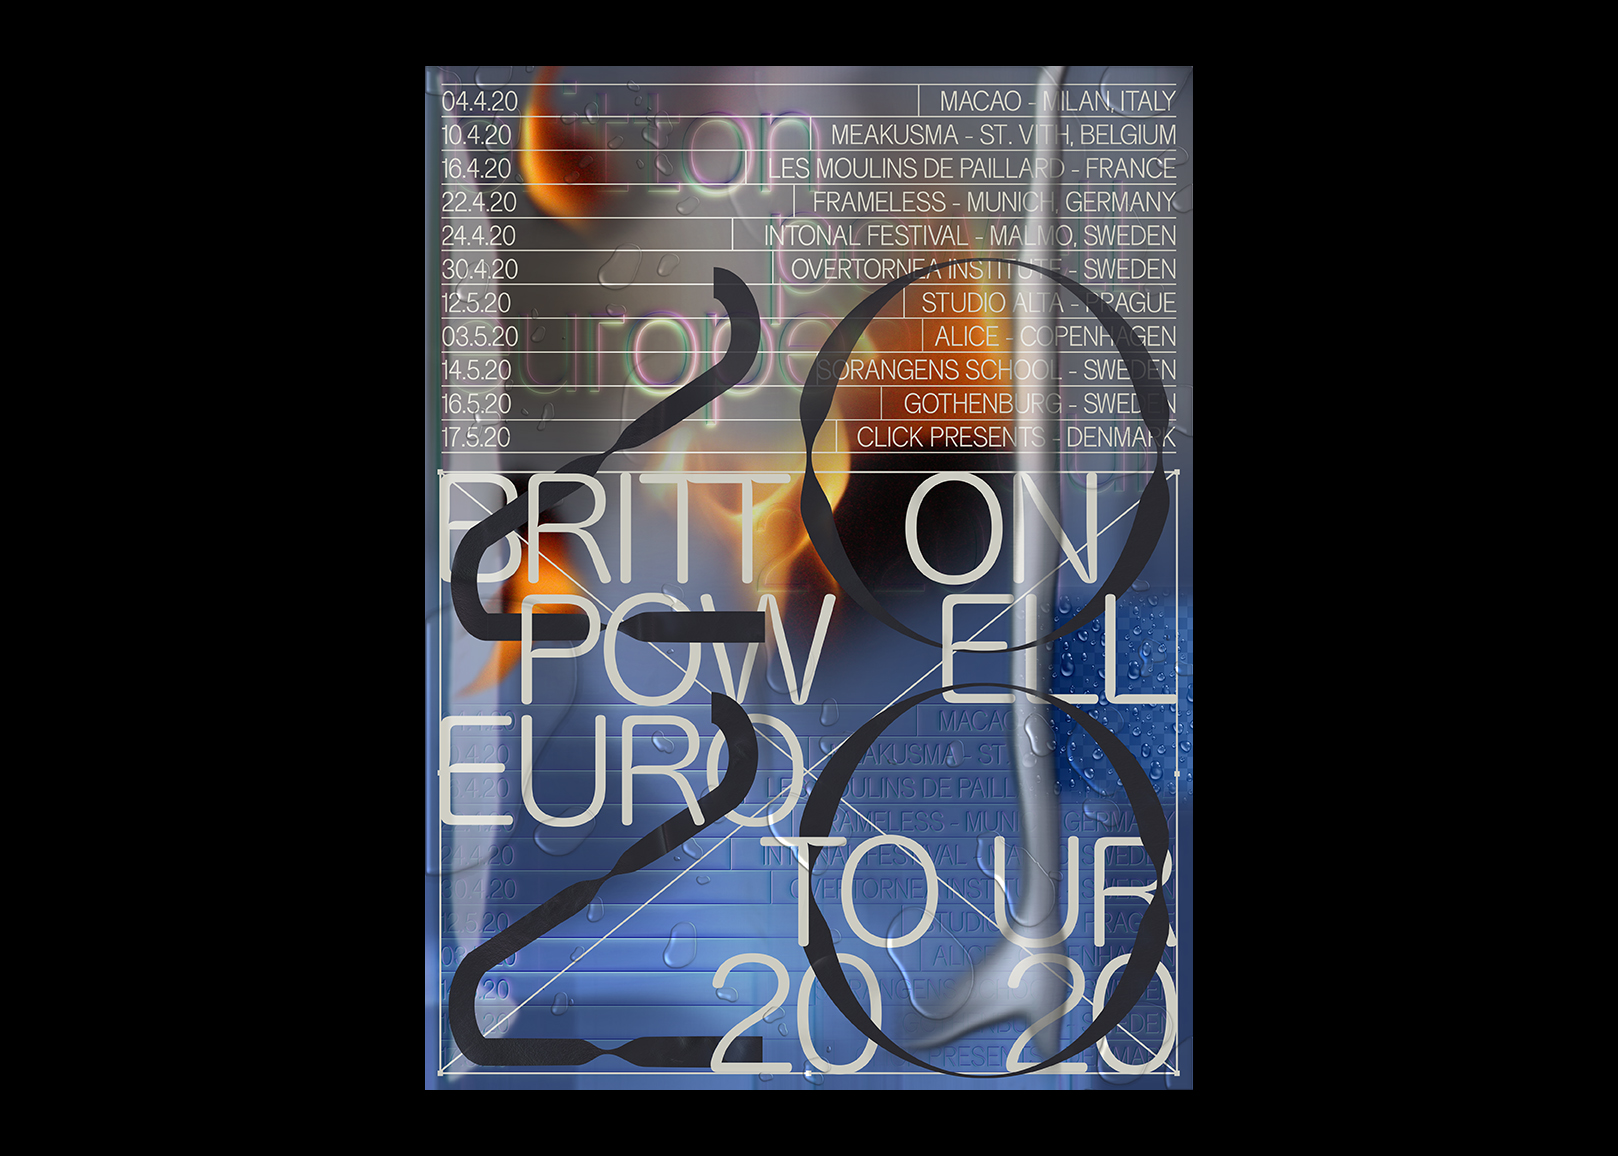 Britton Powell – Euro Tour Poster